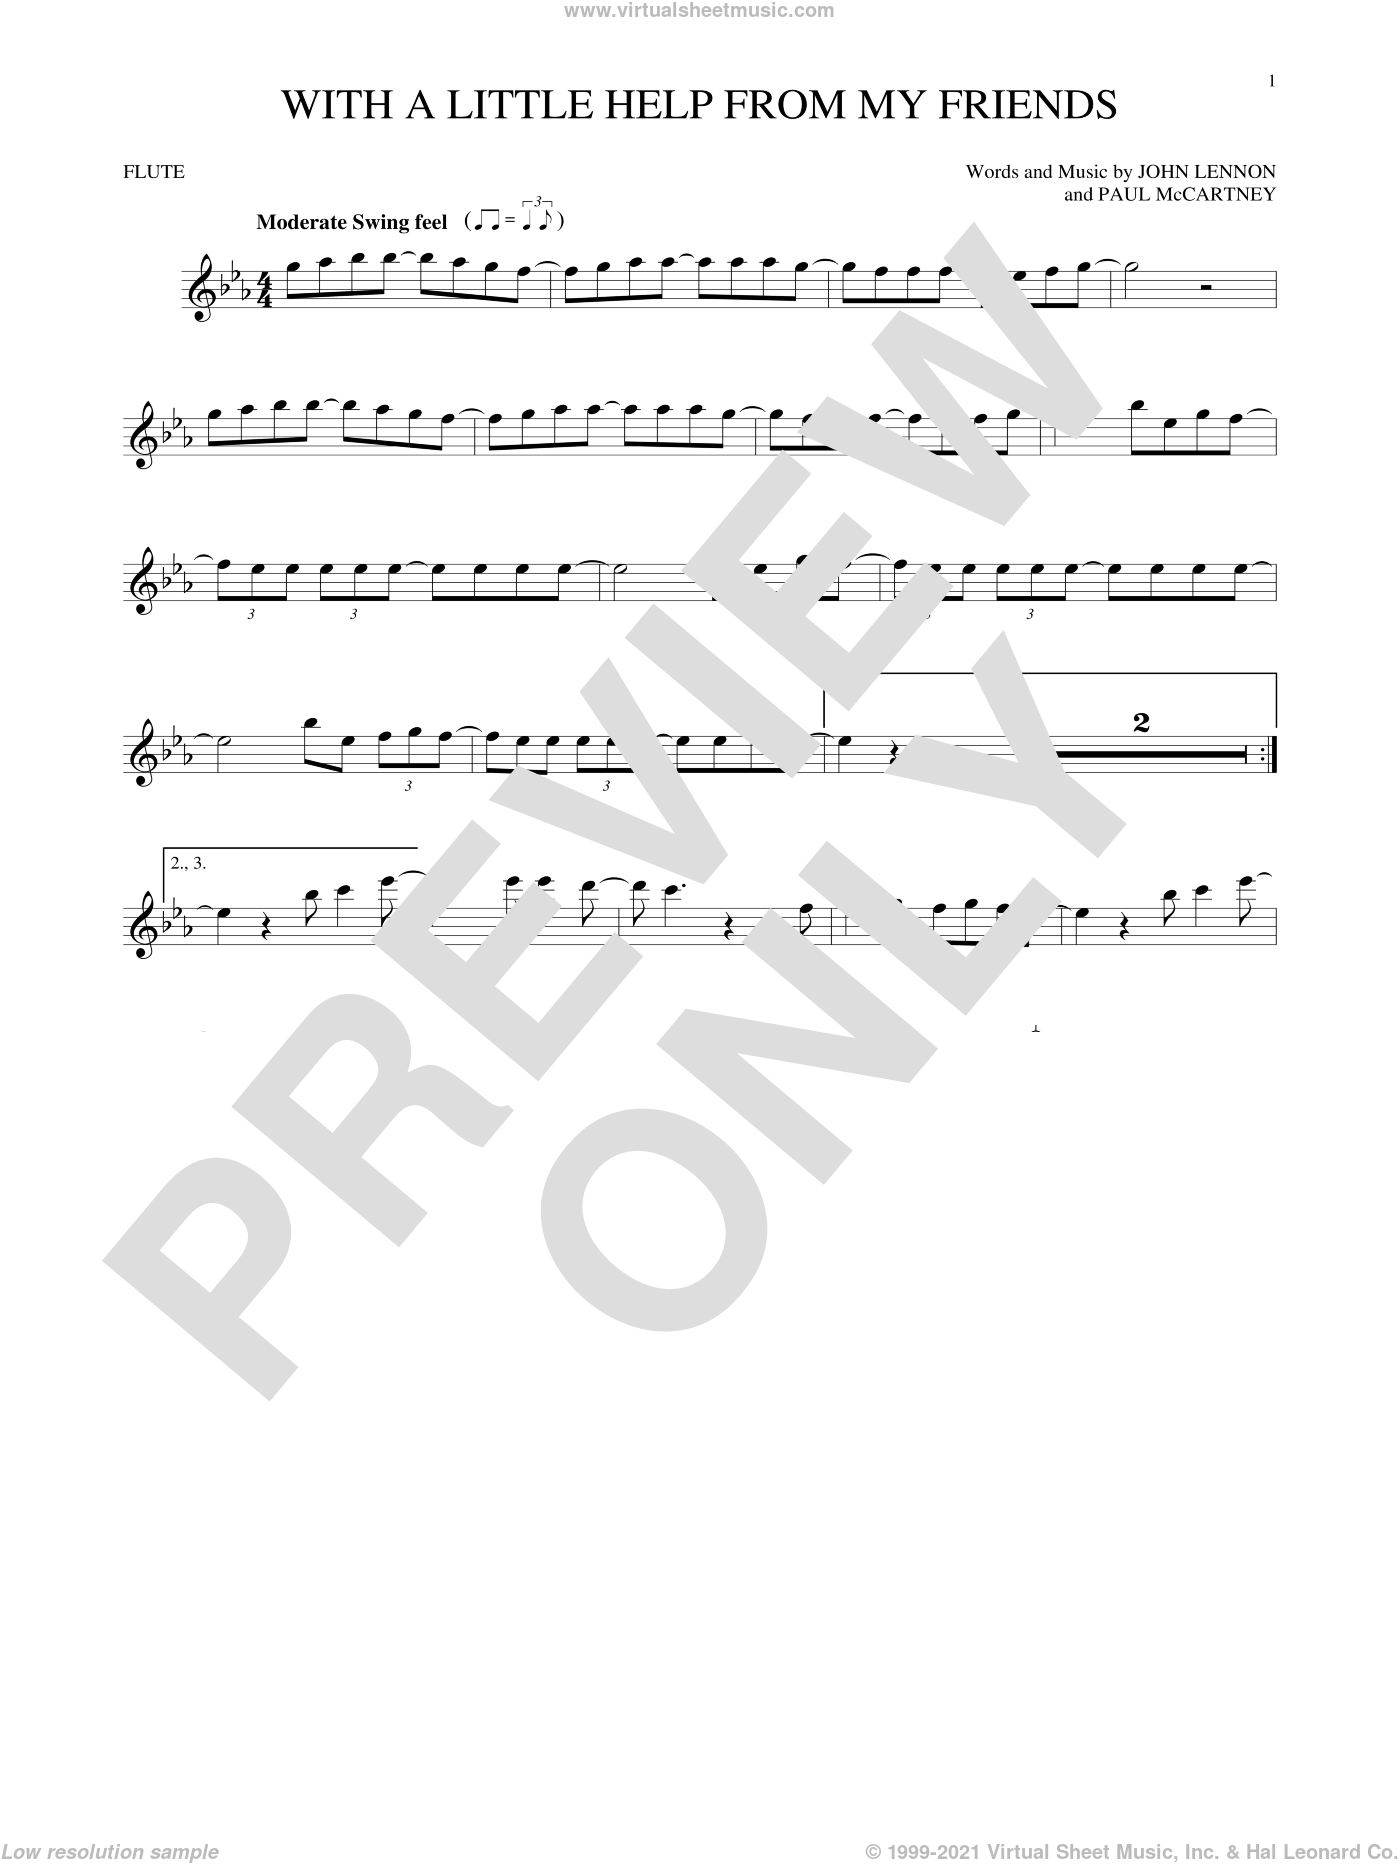 With A Little Help From My Friends sheet music for flute solo by Paul McCartney